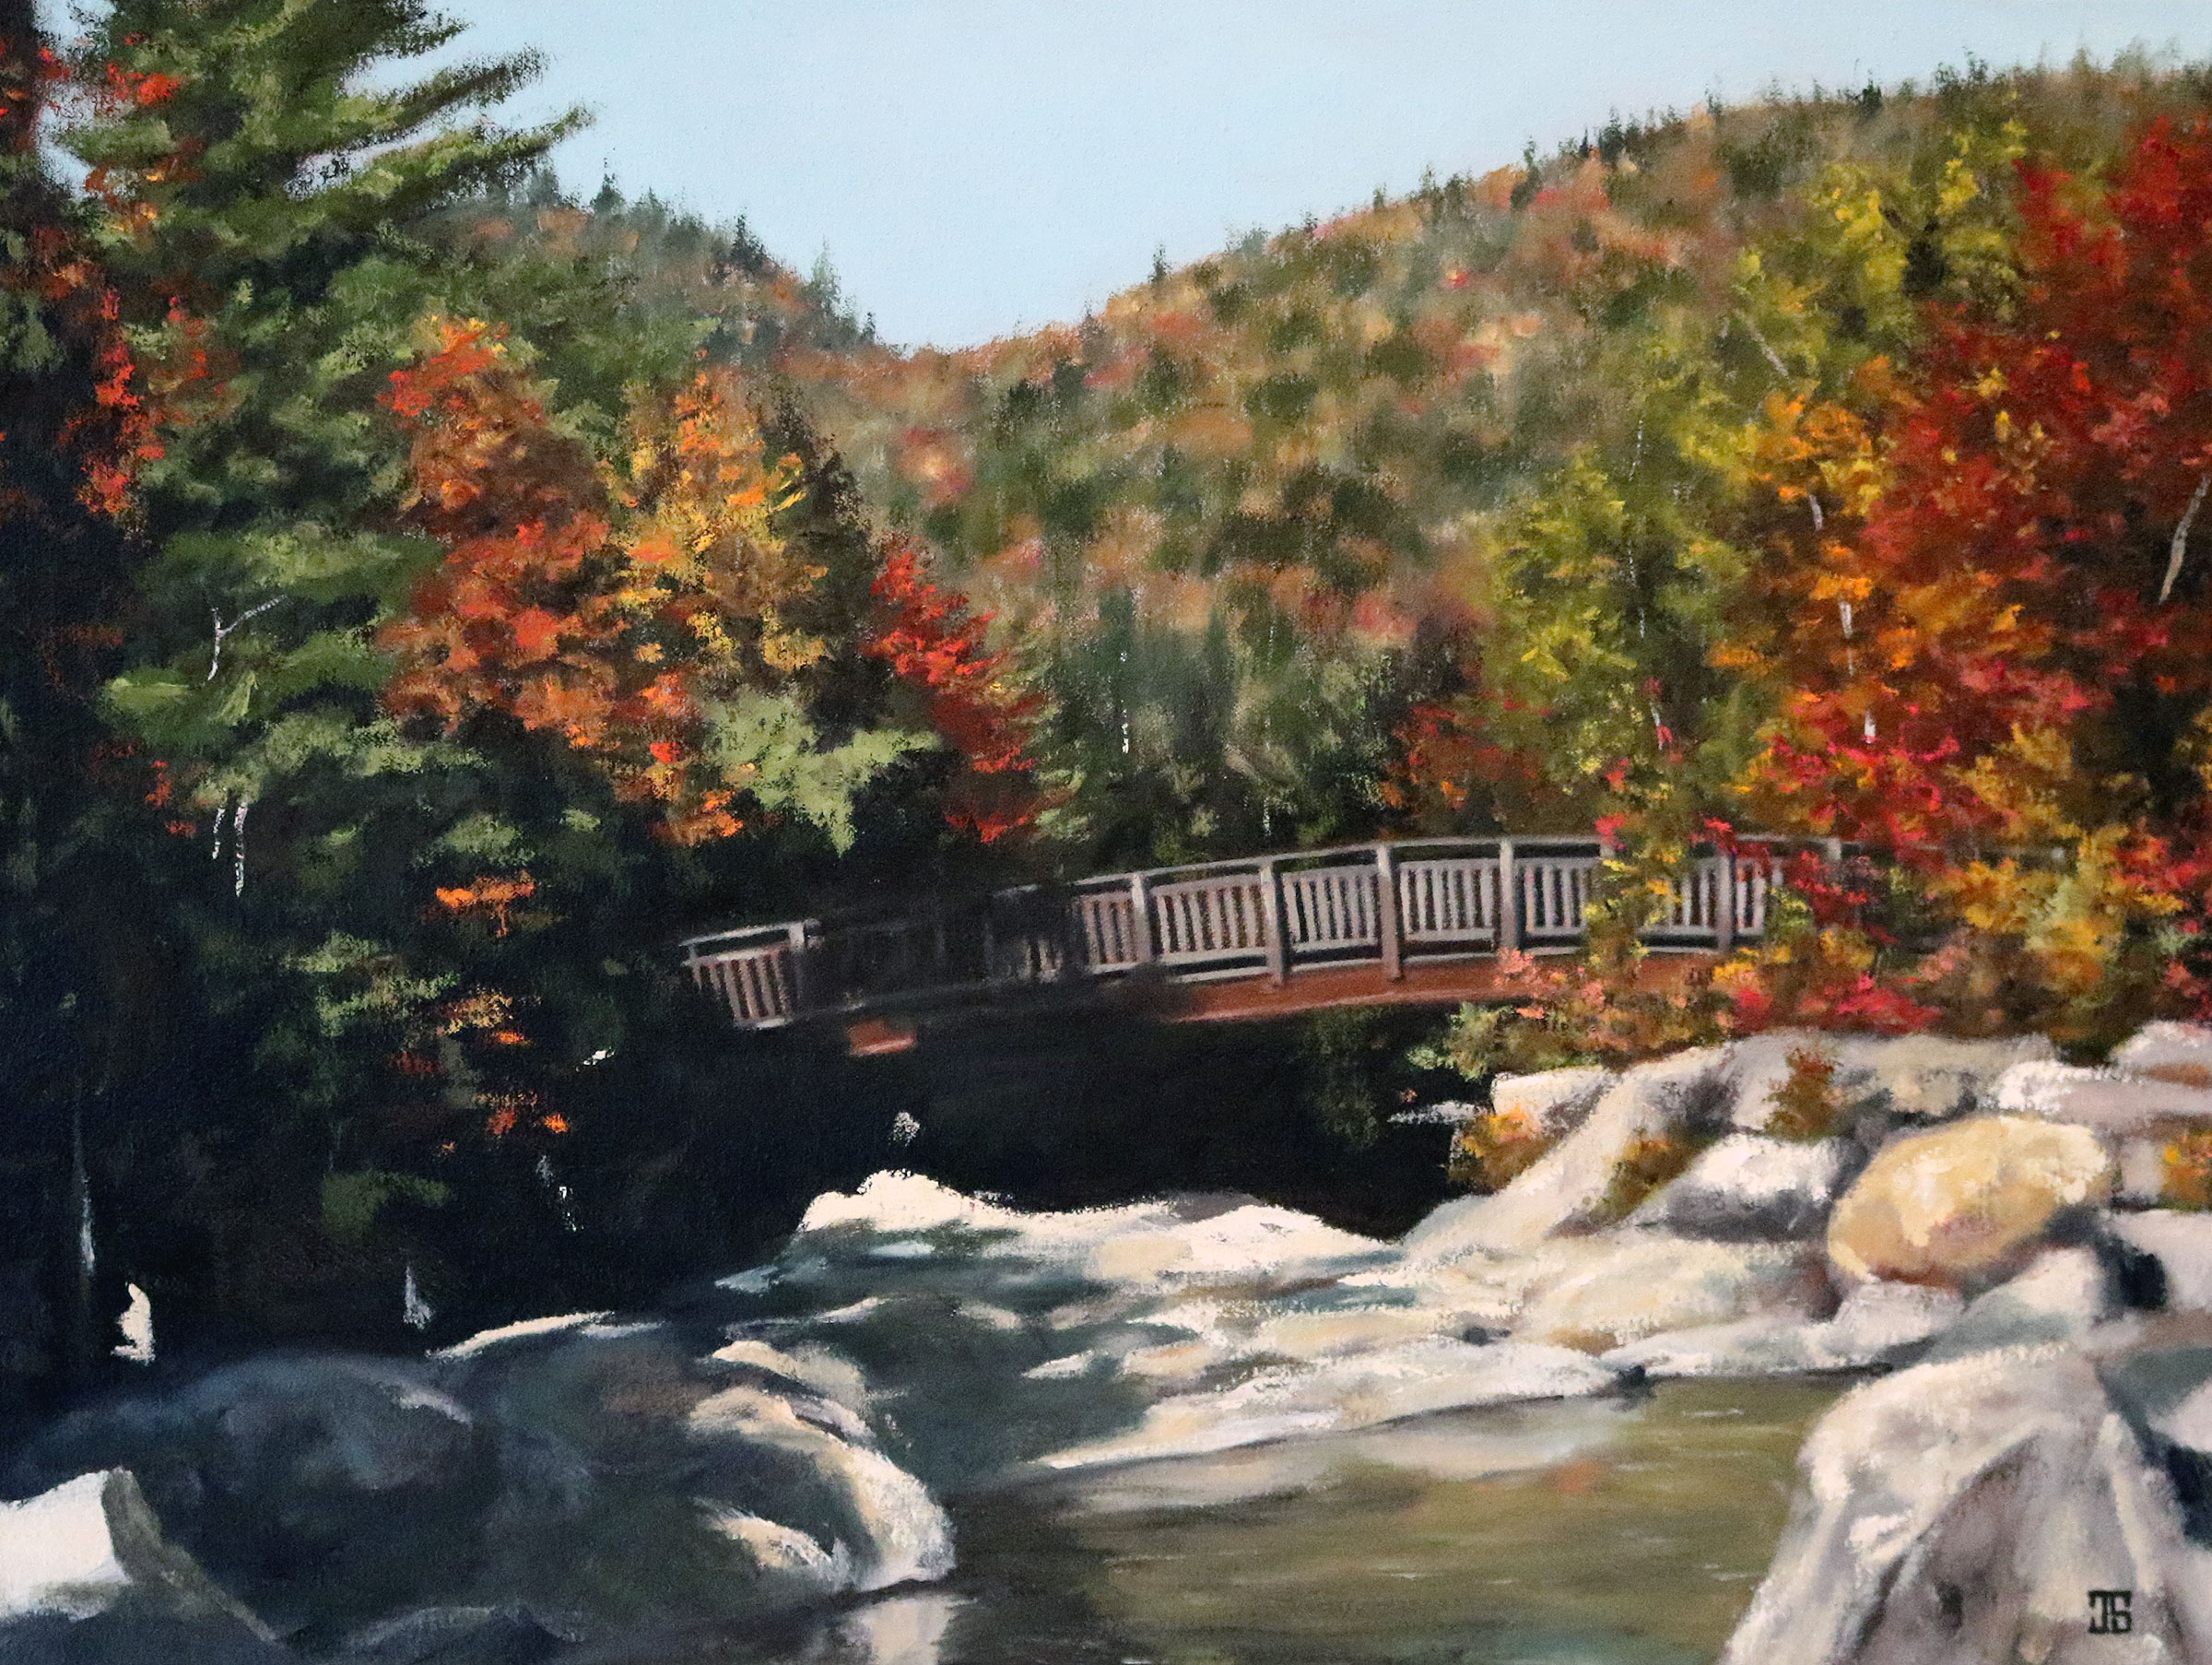 Rocky Gorge, White Mountain National Forest, New Hampshire by Jeffrey Dale Starr